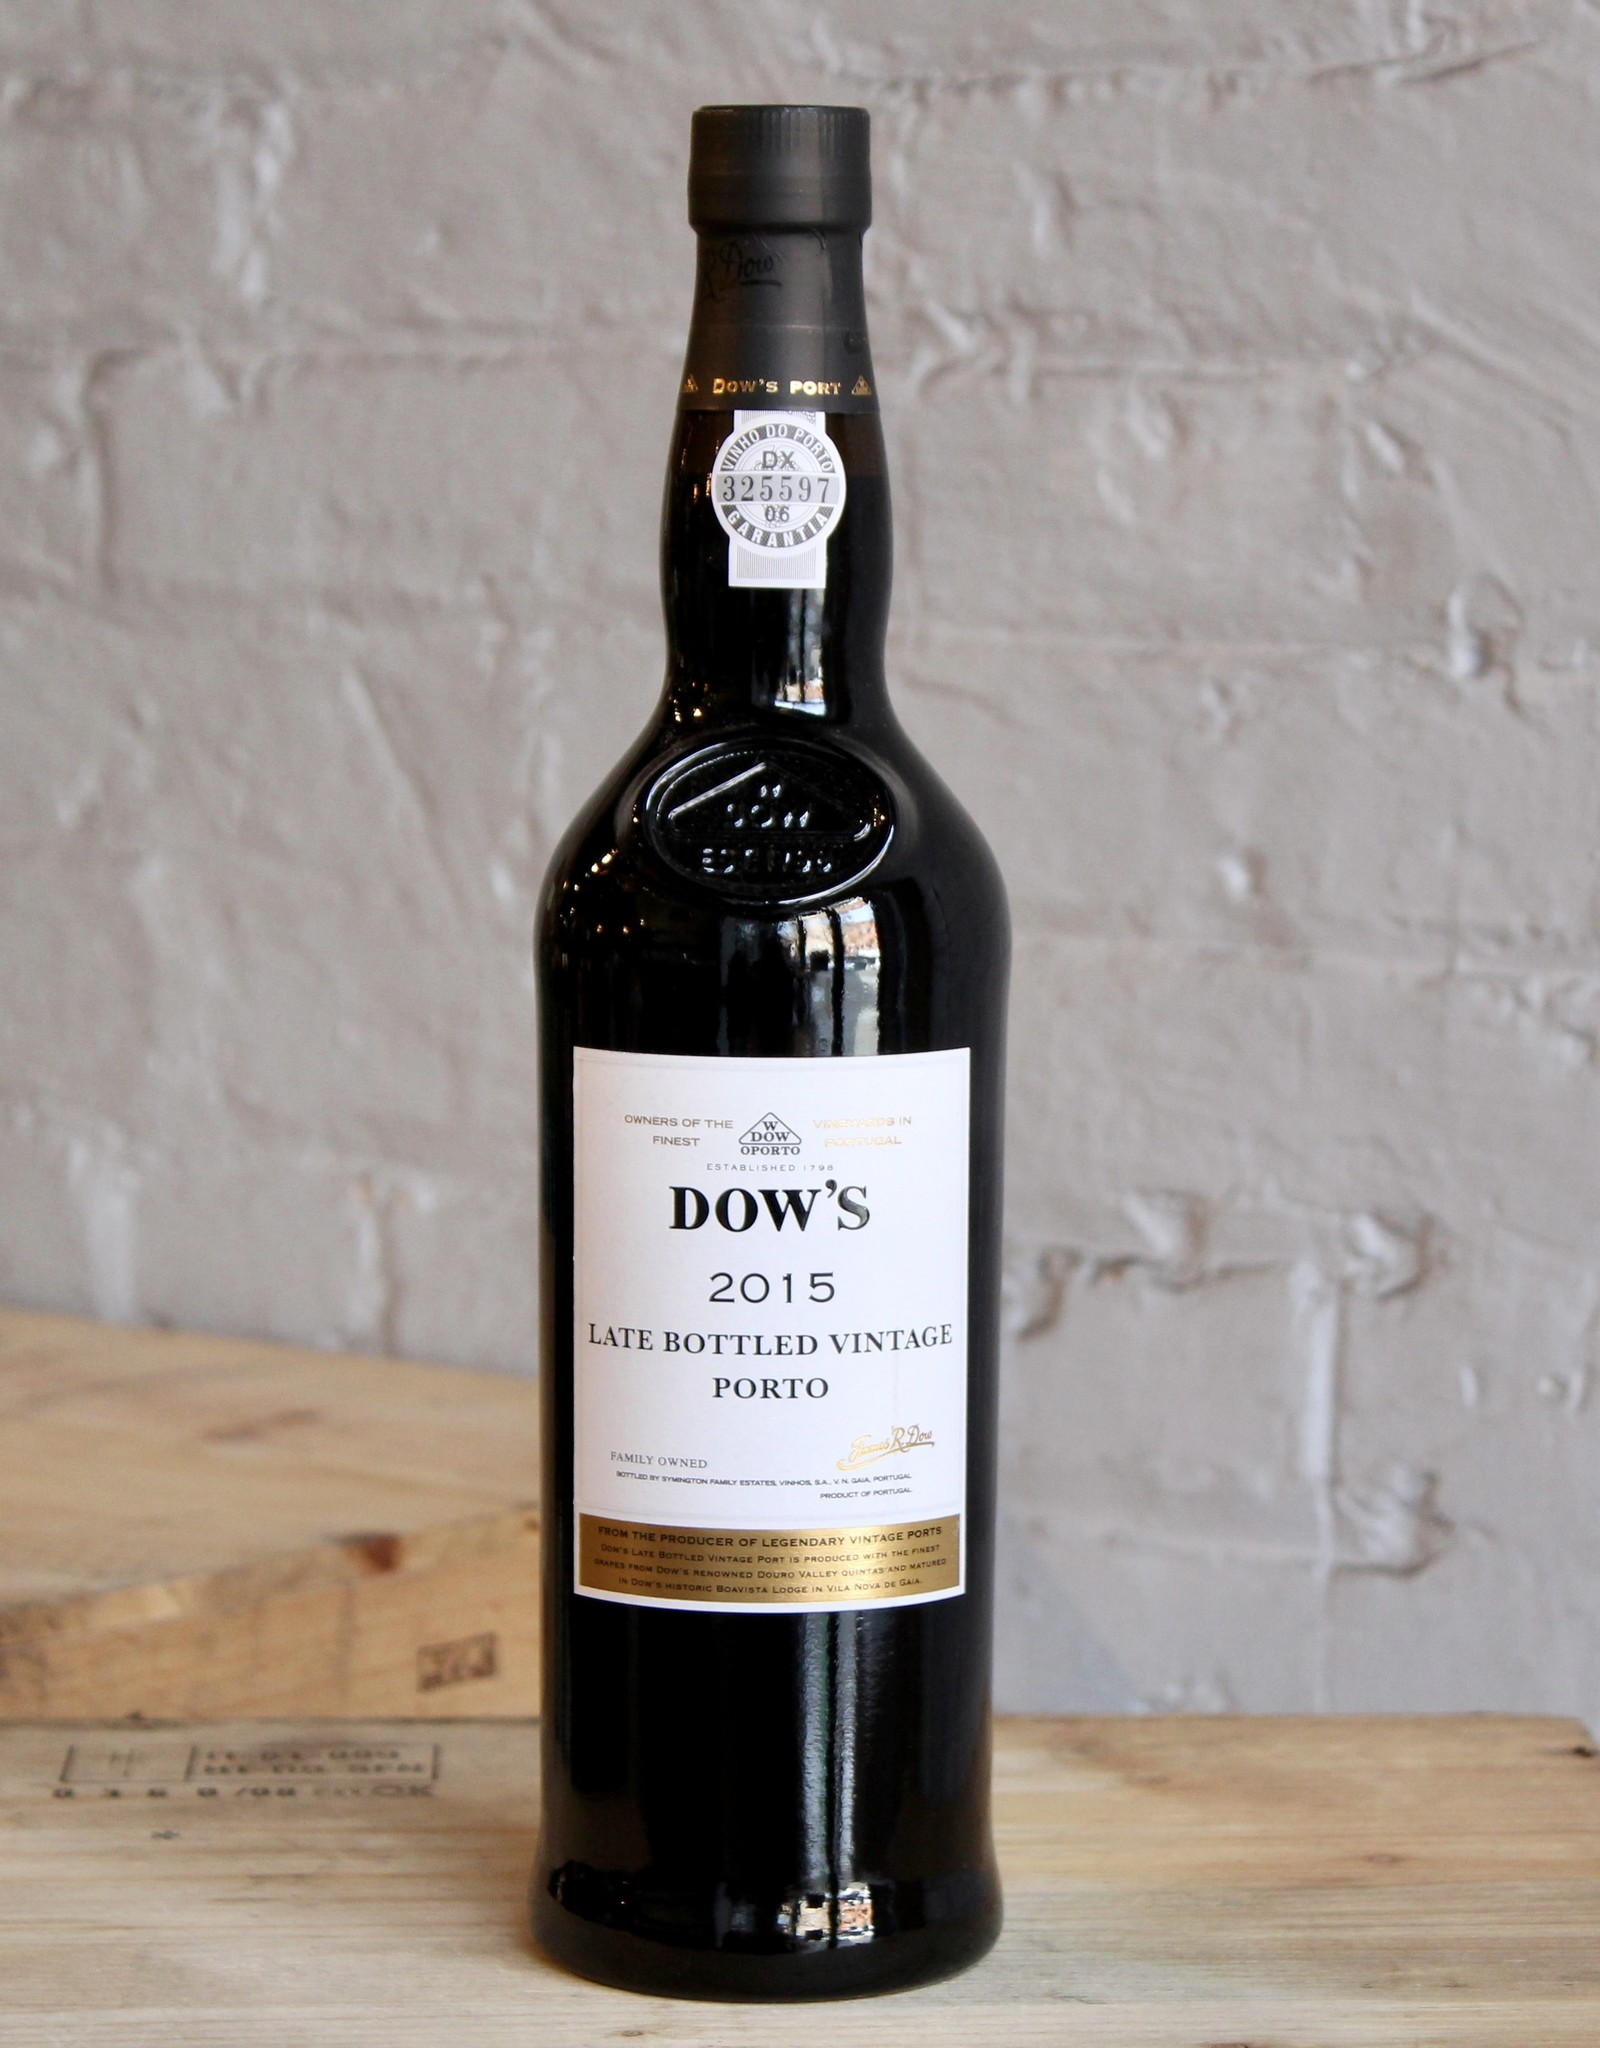 Wine 2015 Dow's Late Bottled Vintage Port - Douro, Portugal (750ml)